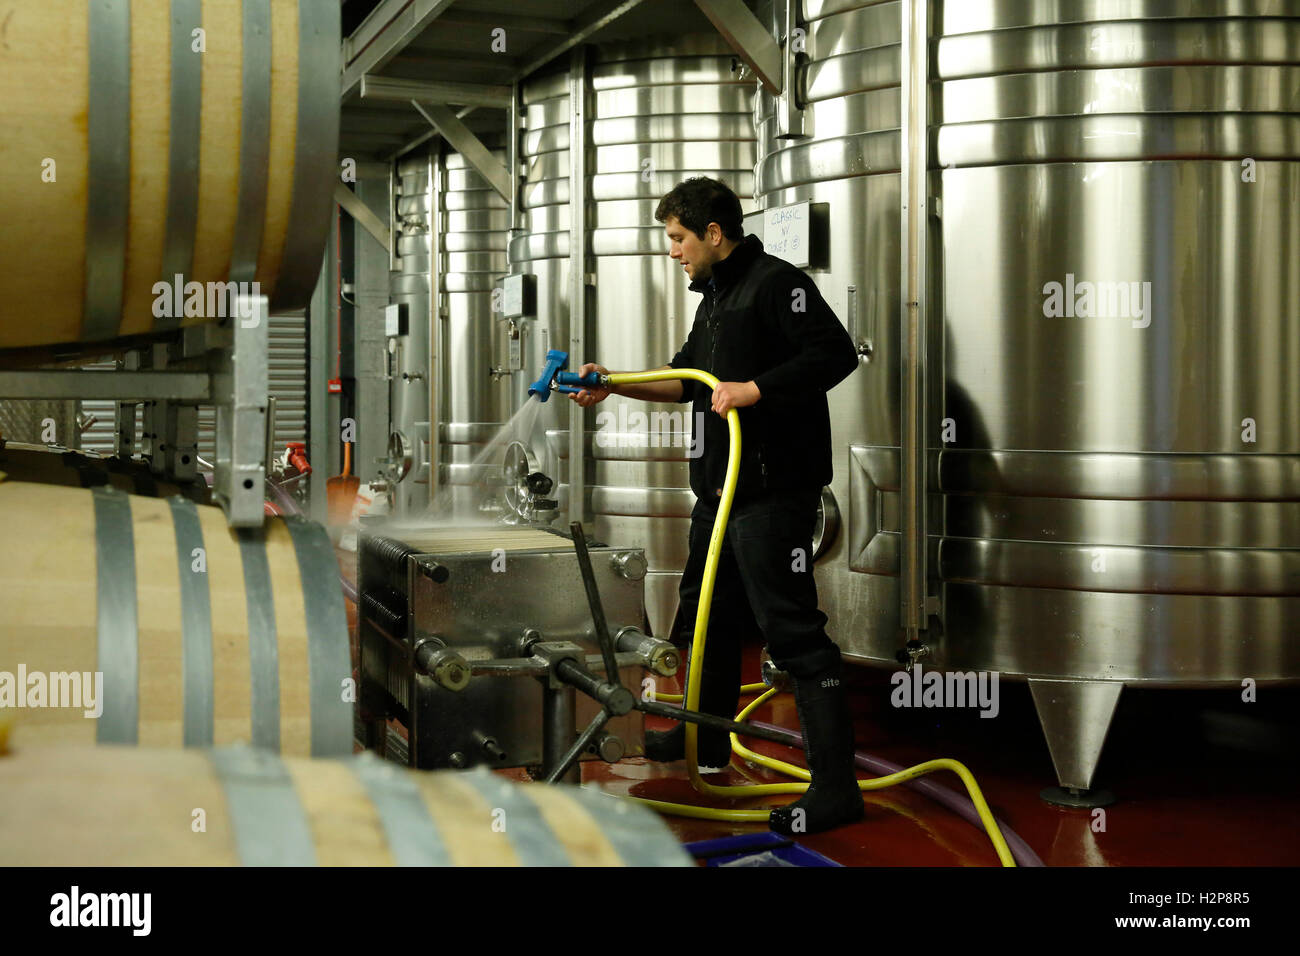 Winemaker Antoine Arnault hoses down filtration equipment at the winery of Hambledon Vineyard situated on the South - Stock Image